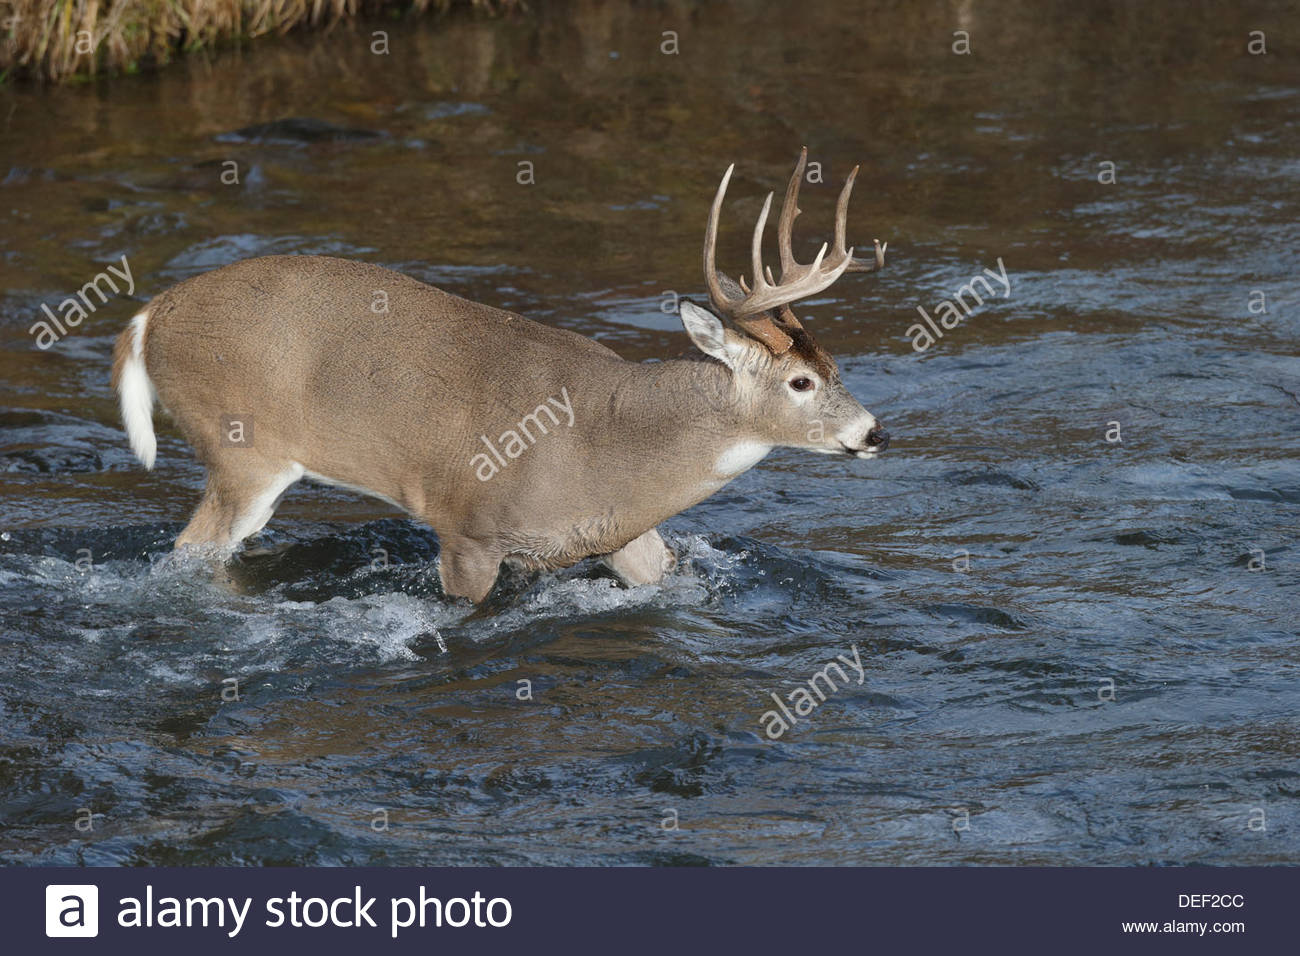 White-tailed Deer; Odocoileus virginianus - Stock Image